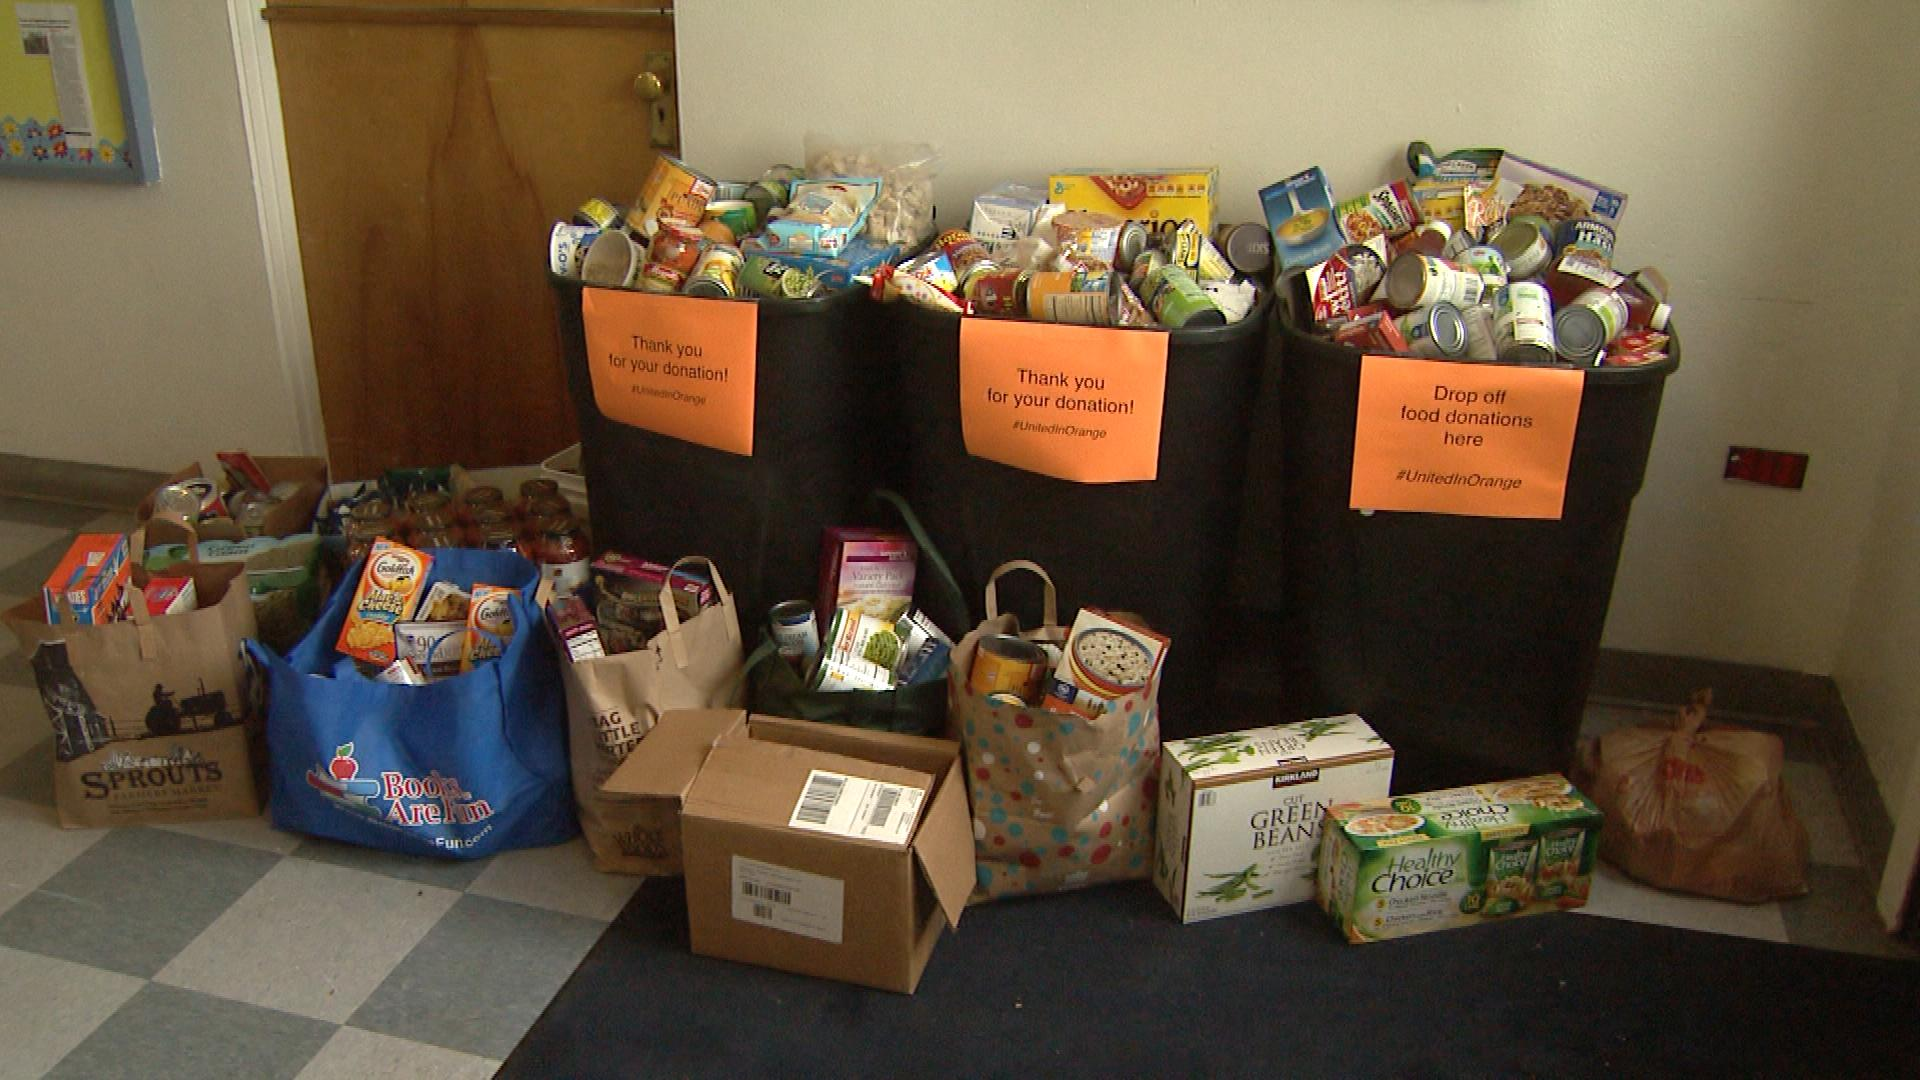 Items collected during the United in Orange Food Drive in 2014 (credit: CBS)